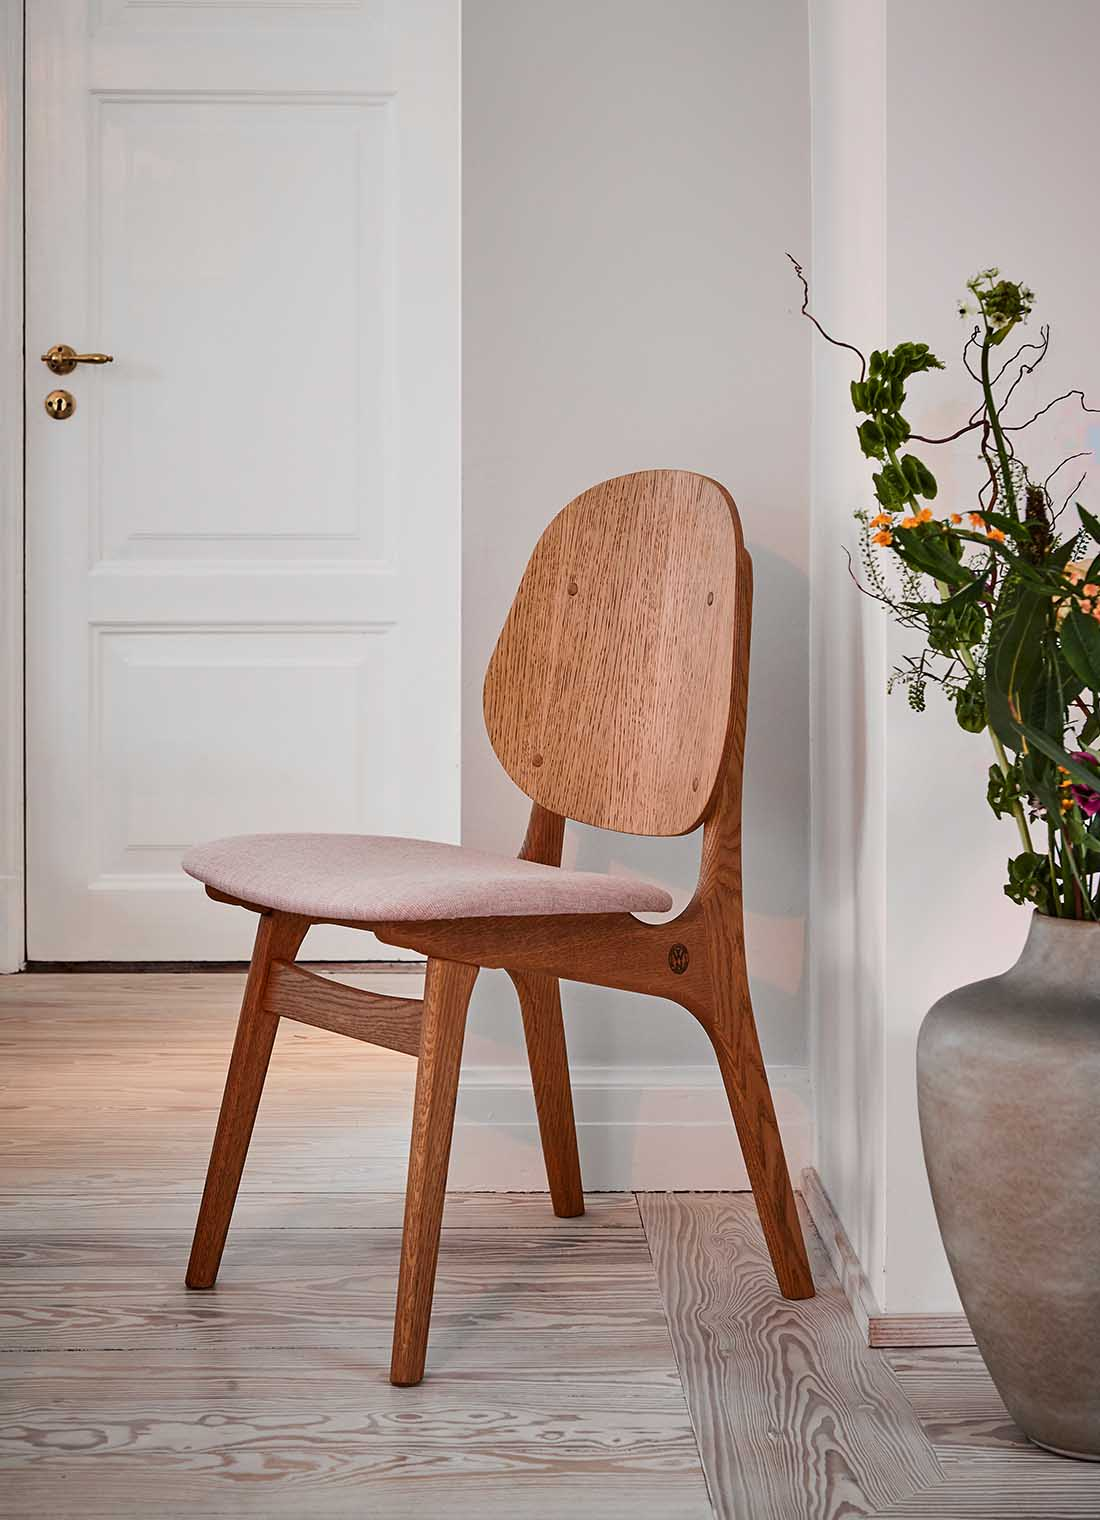 Noble dining chair in teak